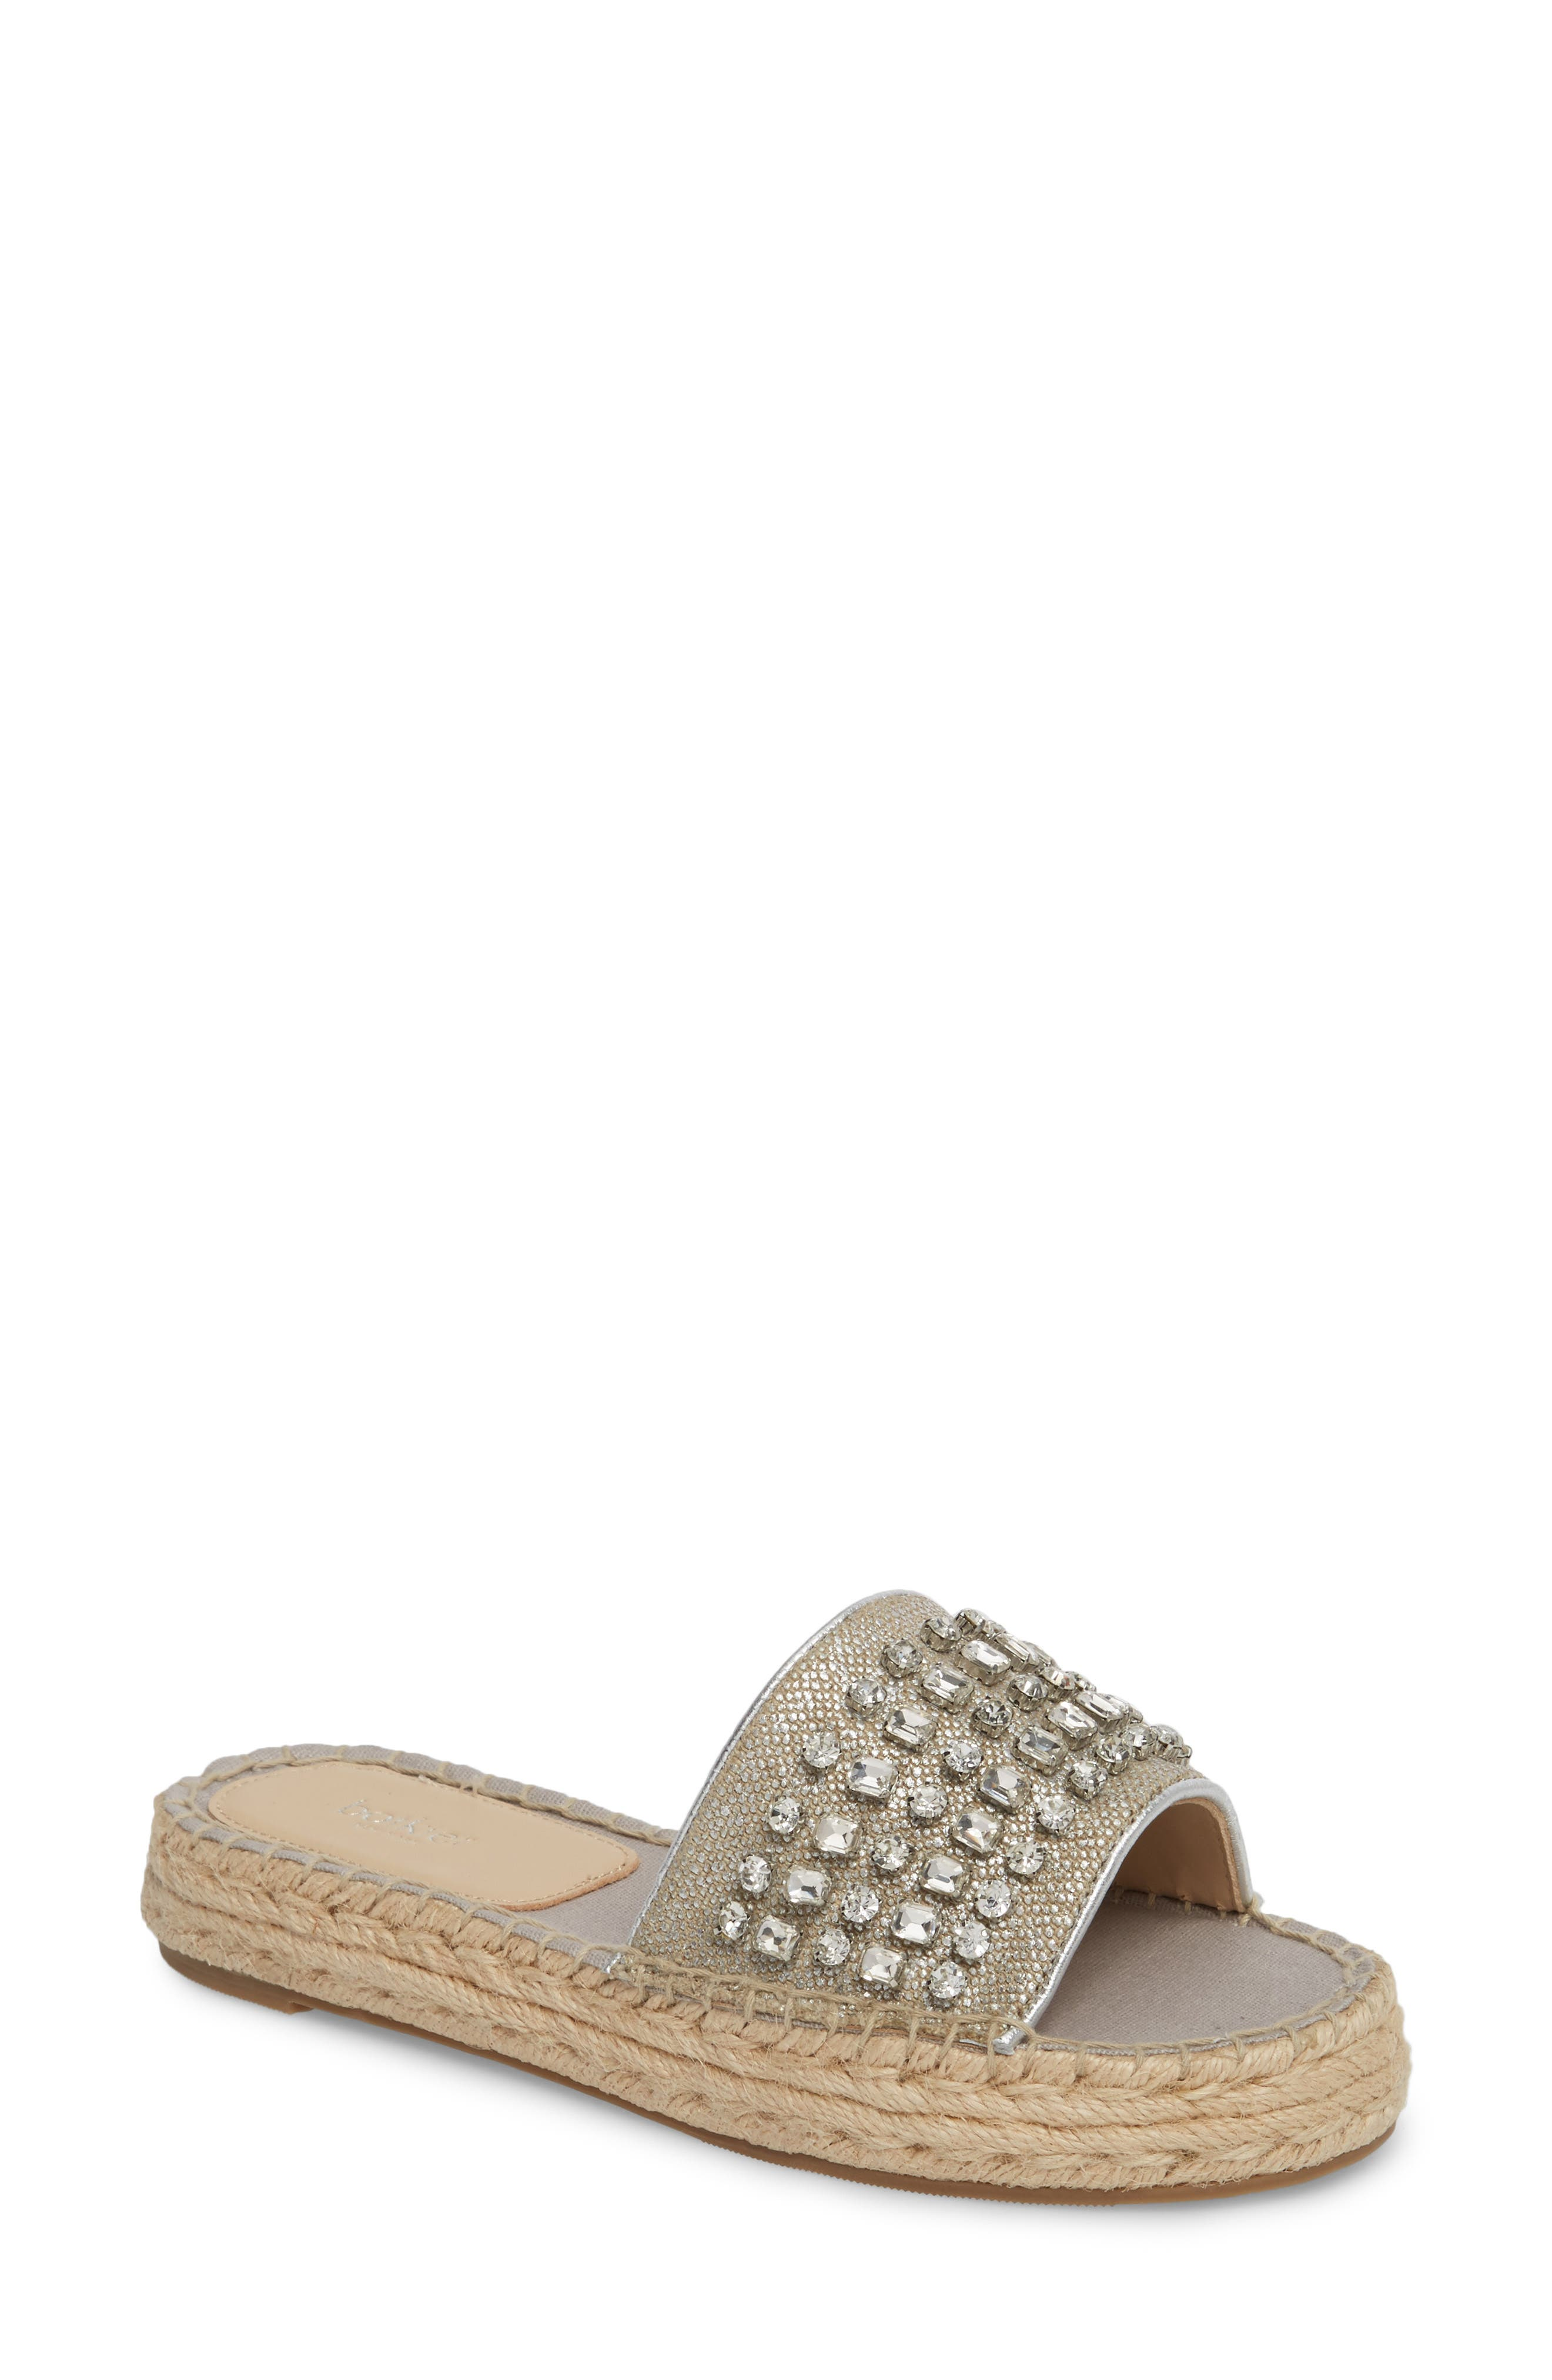 Botkier Julie Slide Sandal (Women)